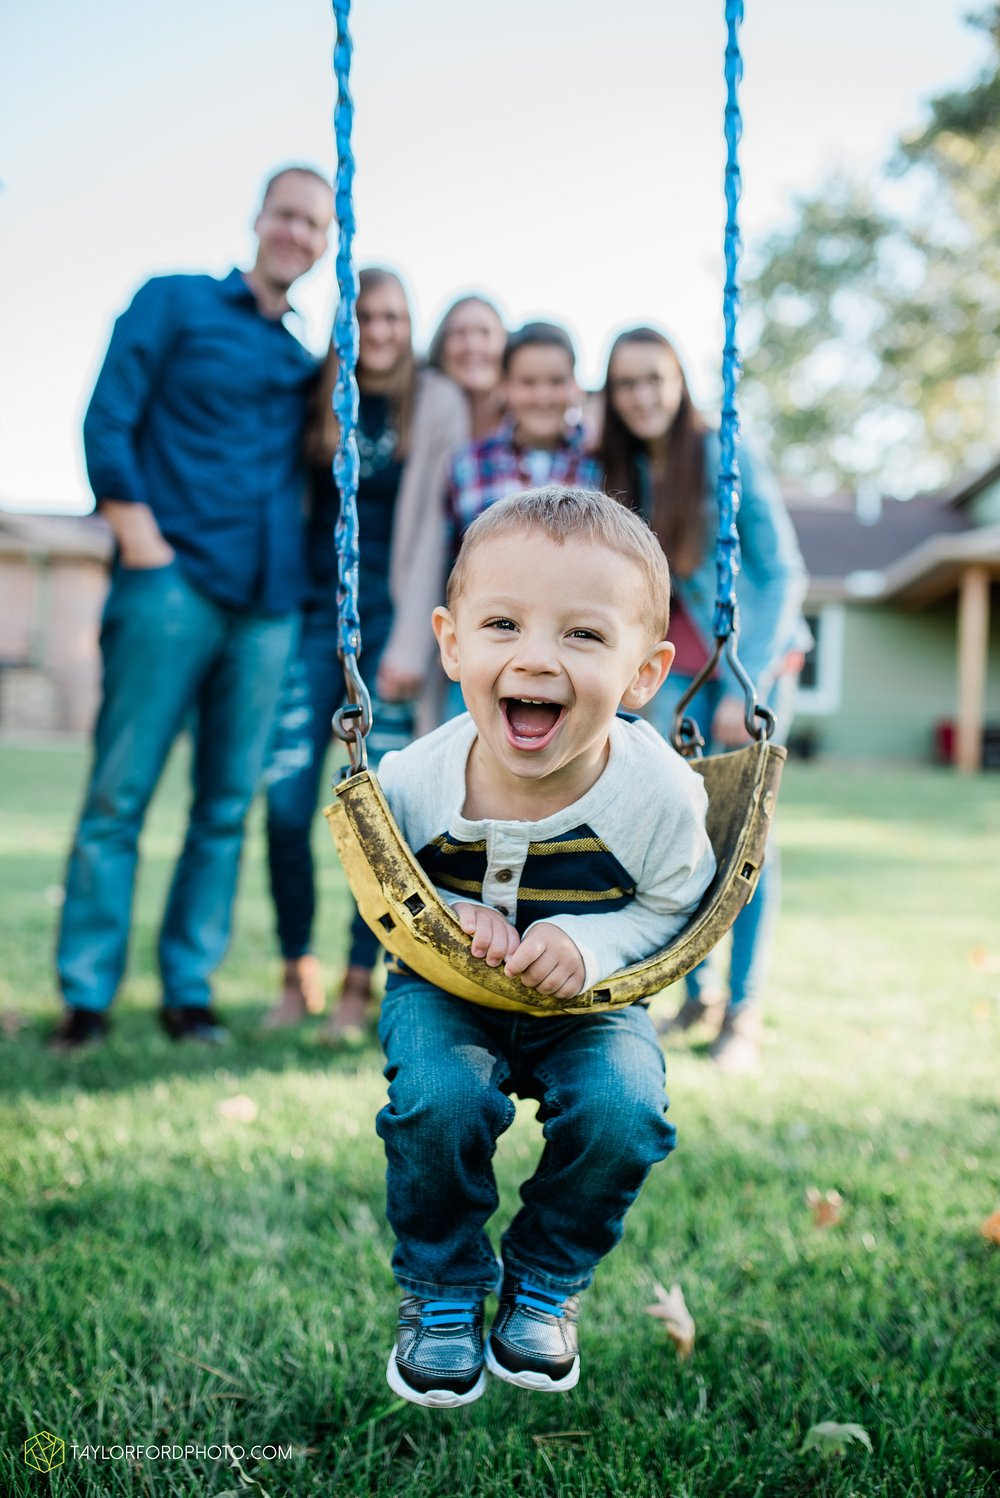 northwest-van-wert-ohio-backyard-at-home-outdoor-natural-light-stollerfamily-photographer-taylor-ford-photography_1233.jpg